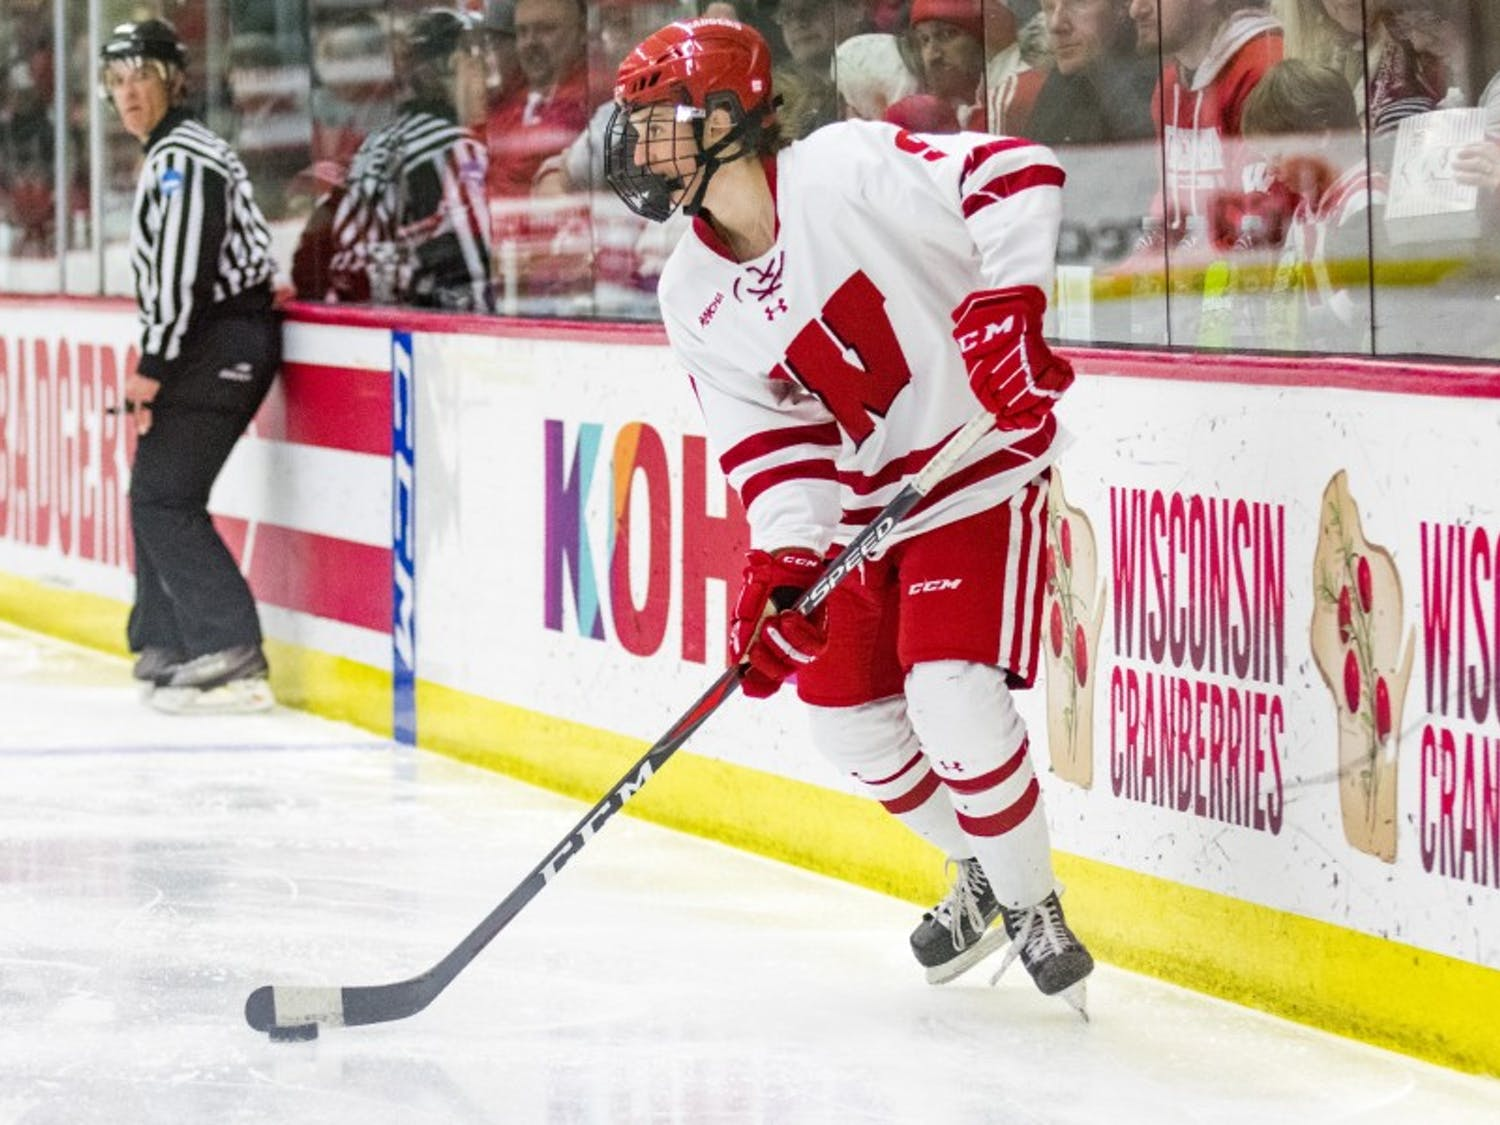 Sophomore forward Sophie Shirley is a pivotal part of UW's attack, which has scored five or more goals in three of Wisconsin's four wins this season.